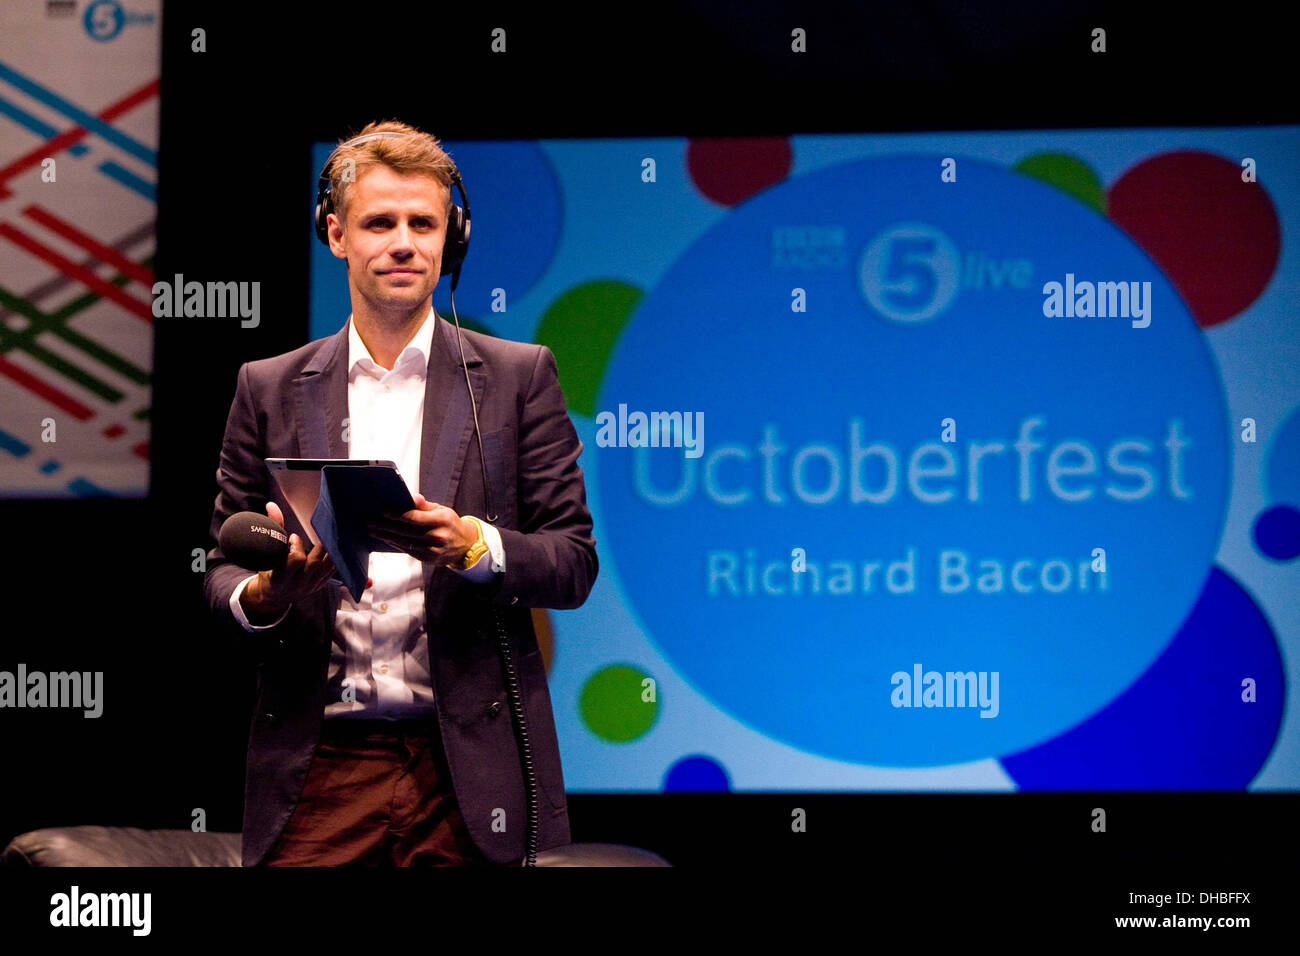 Bbc Radio 5 Stock Photos   Bbc Radio 5 Stock Images   Alamy Richard Bacon at BBC Radio 5 Live Octoberfest in Sheffield Thursday 11 10 12